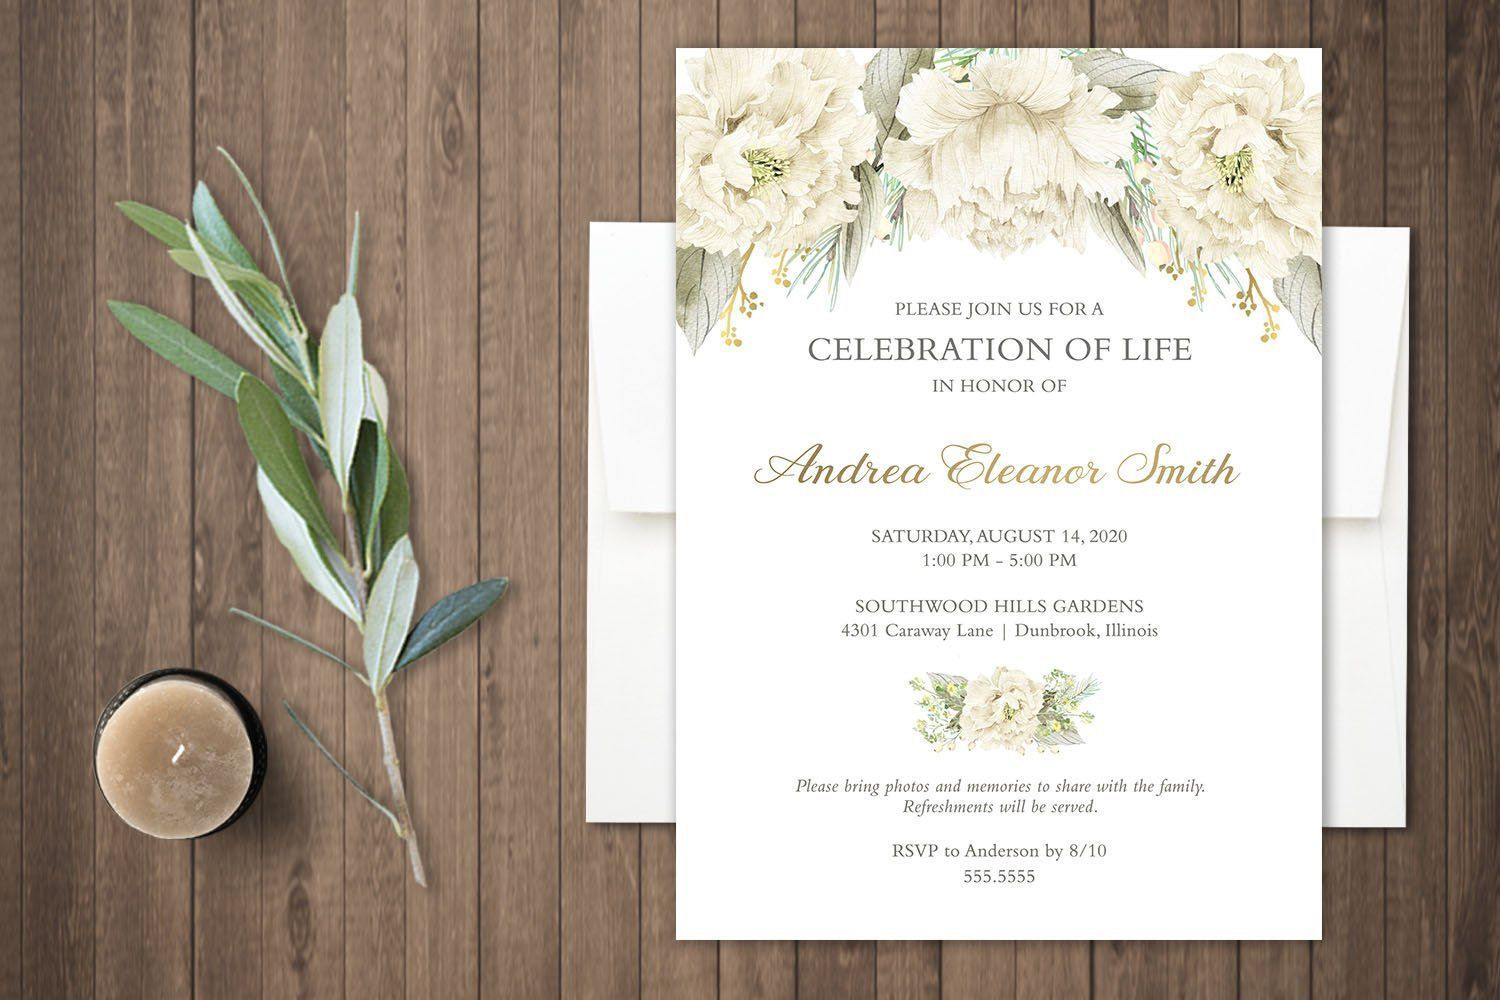 000 Singular Celebration Of Life Invite Template Free High Resolution  Invitation DownloadFull